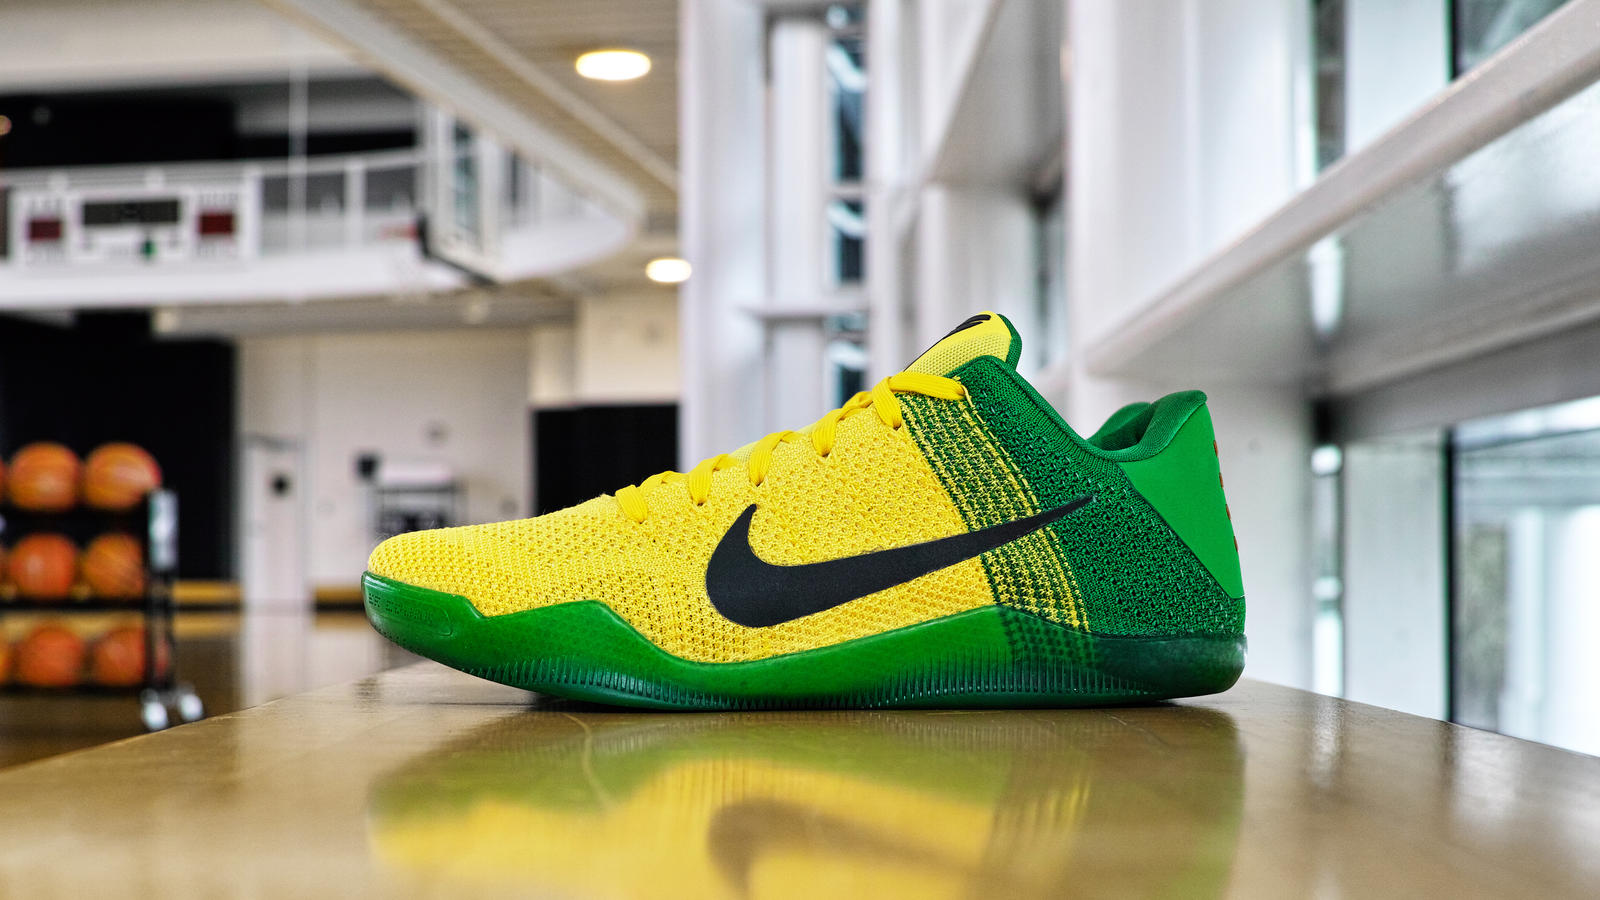 Sneaker-stream-nike-kobe-11-oregon-profile_hd_1600